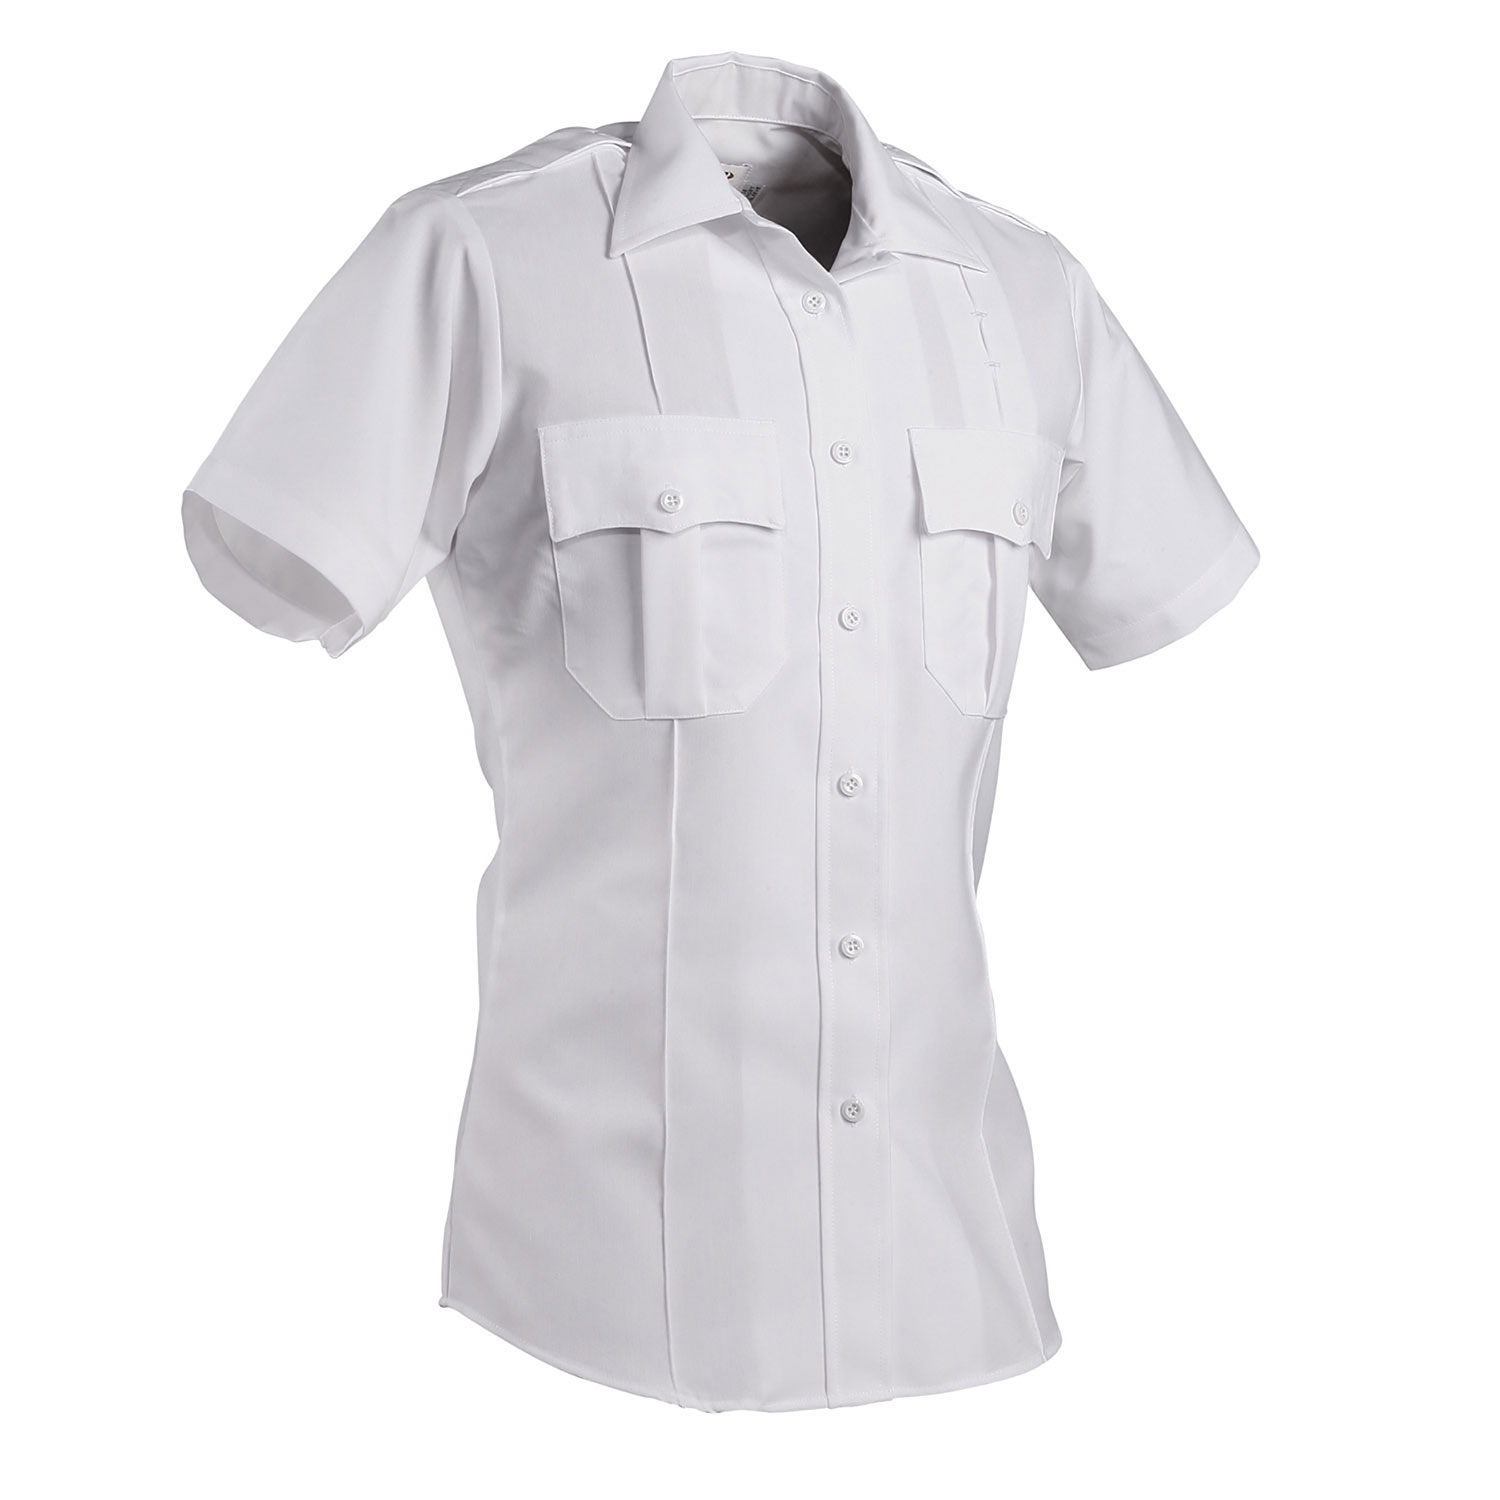 Elbeco Duty Maxx Short Sleeve Shirt